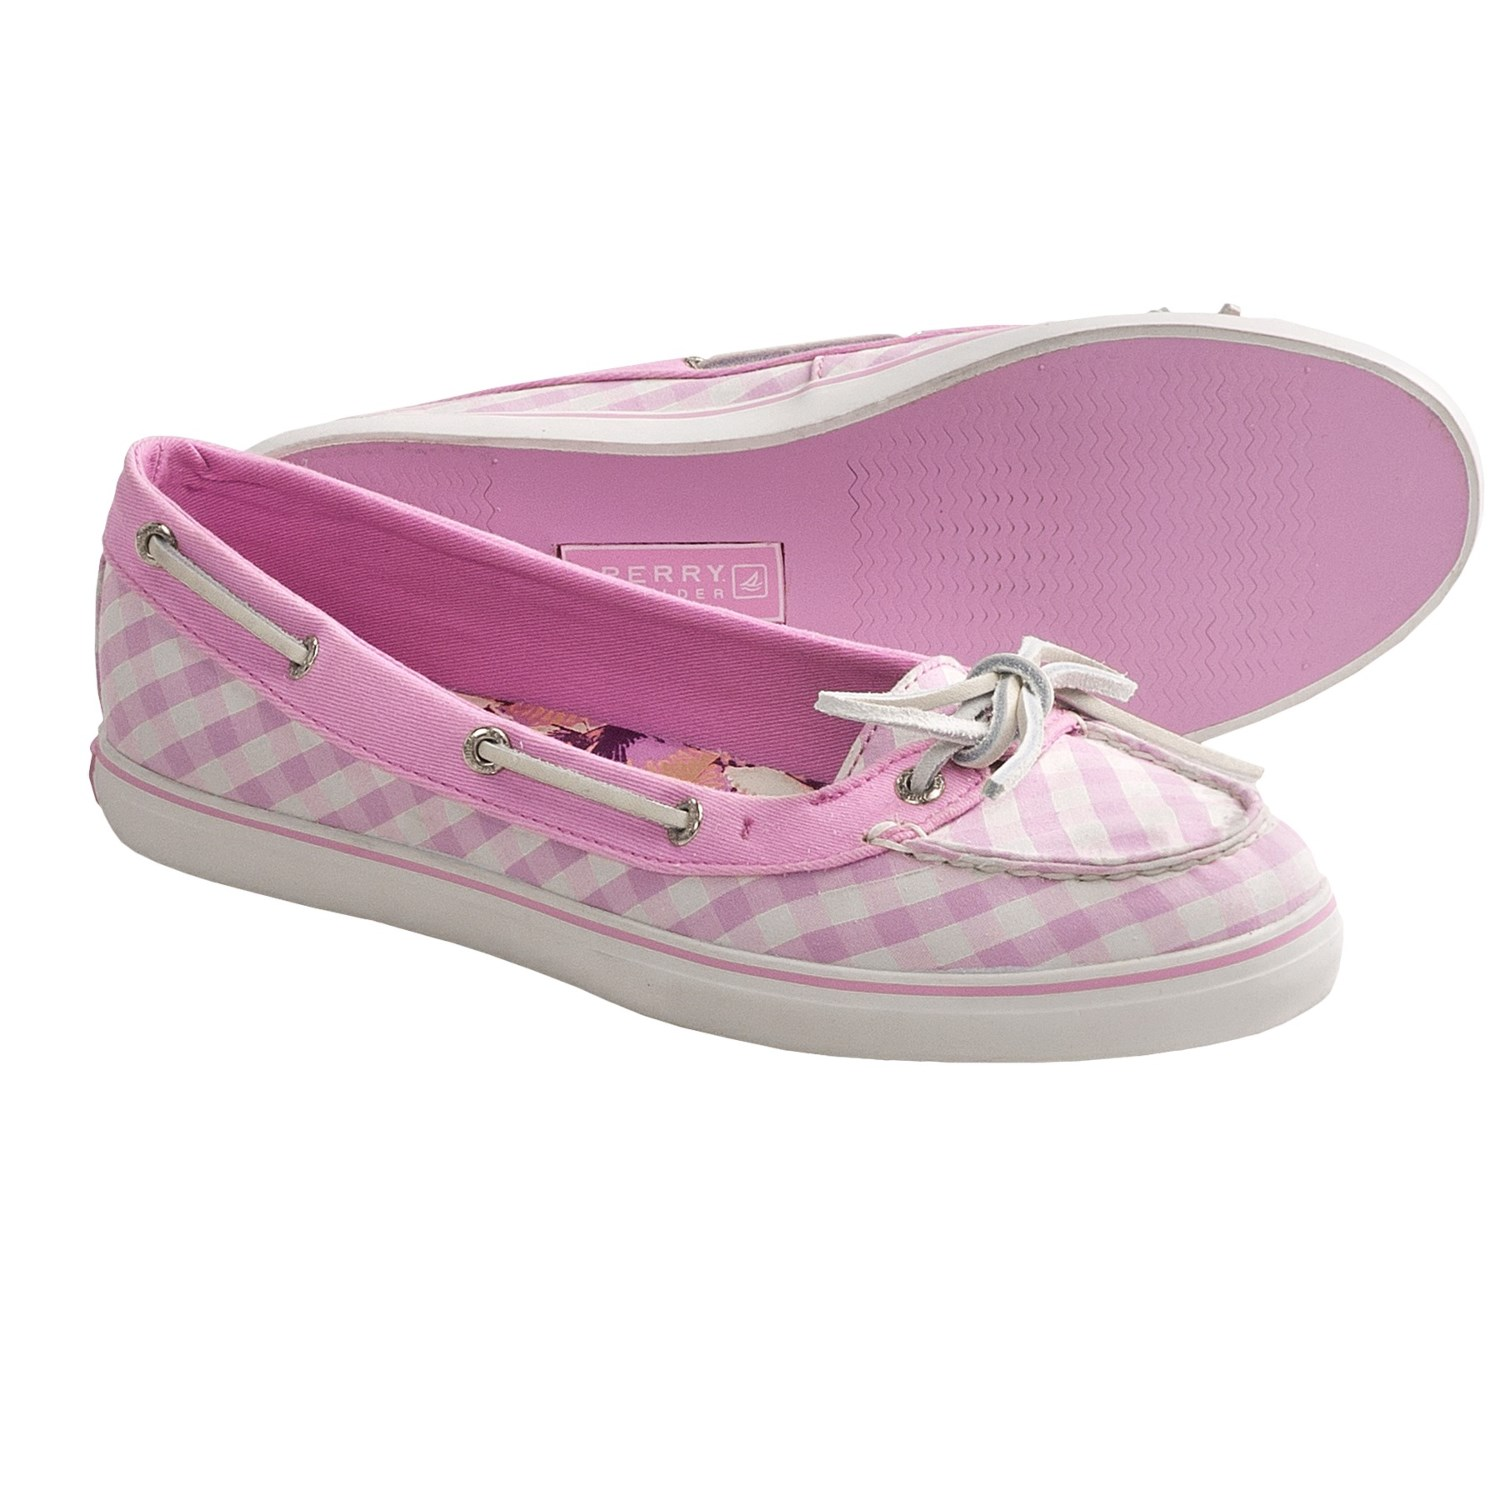 Sperry Top-Sider Lola Shoes (For Women) in Pastel Lavender Gingham